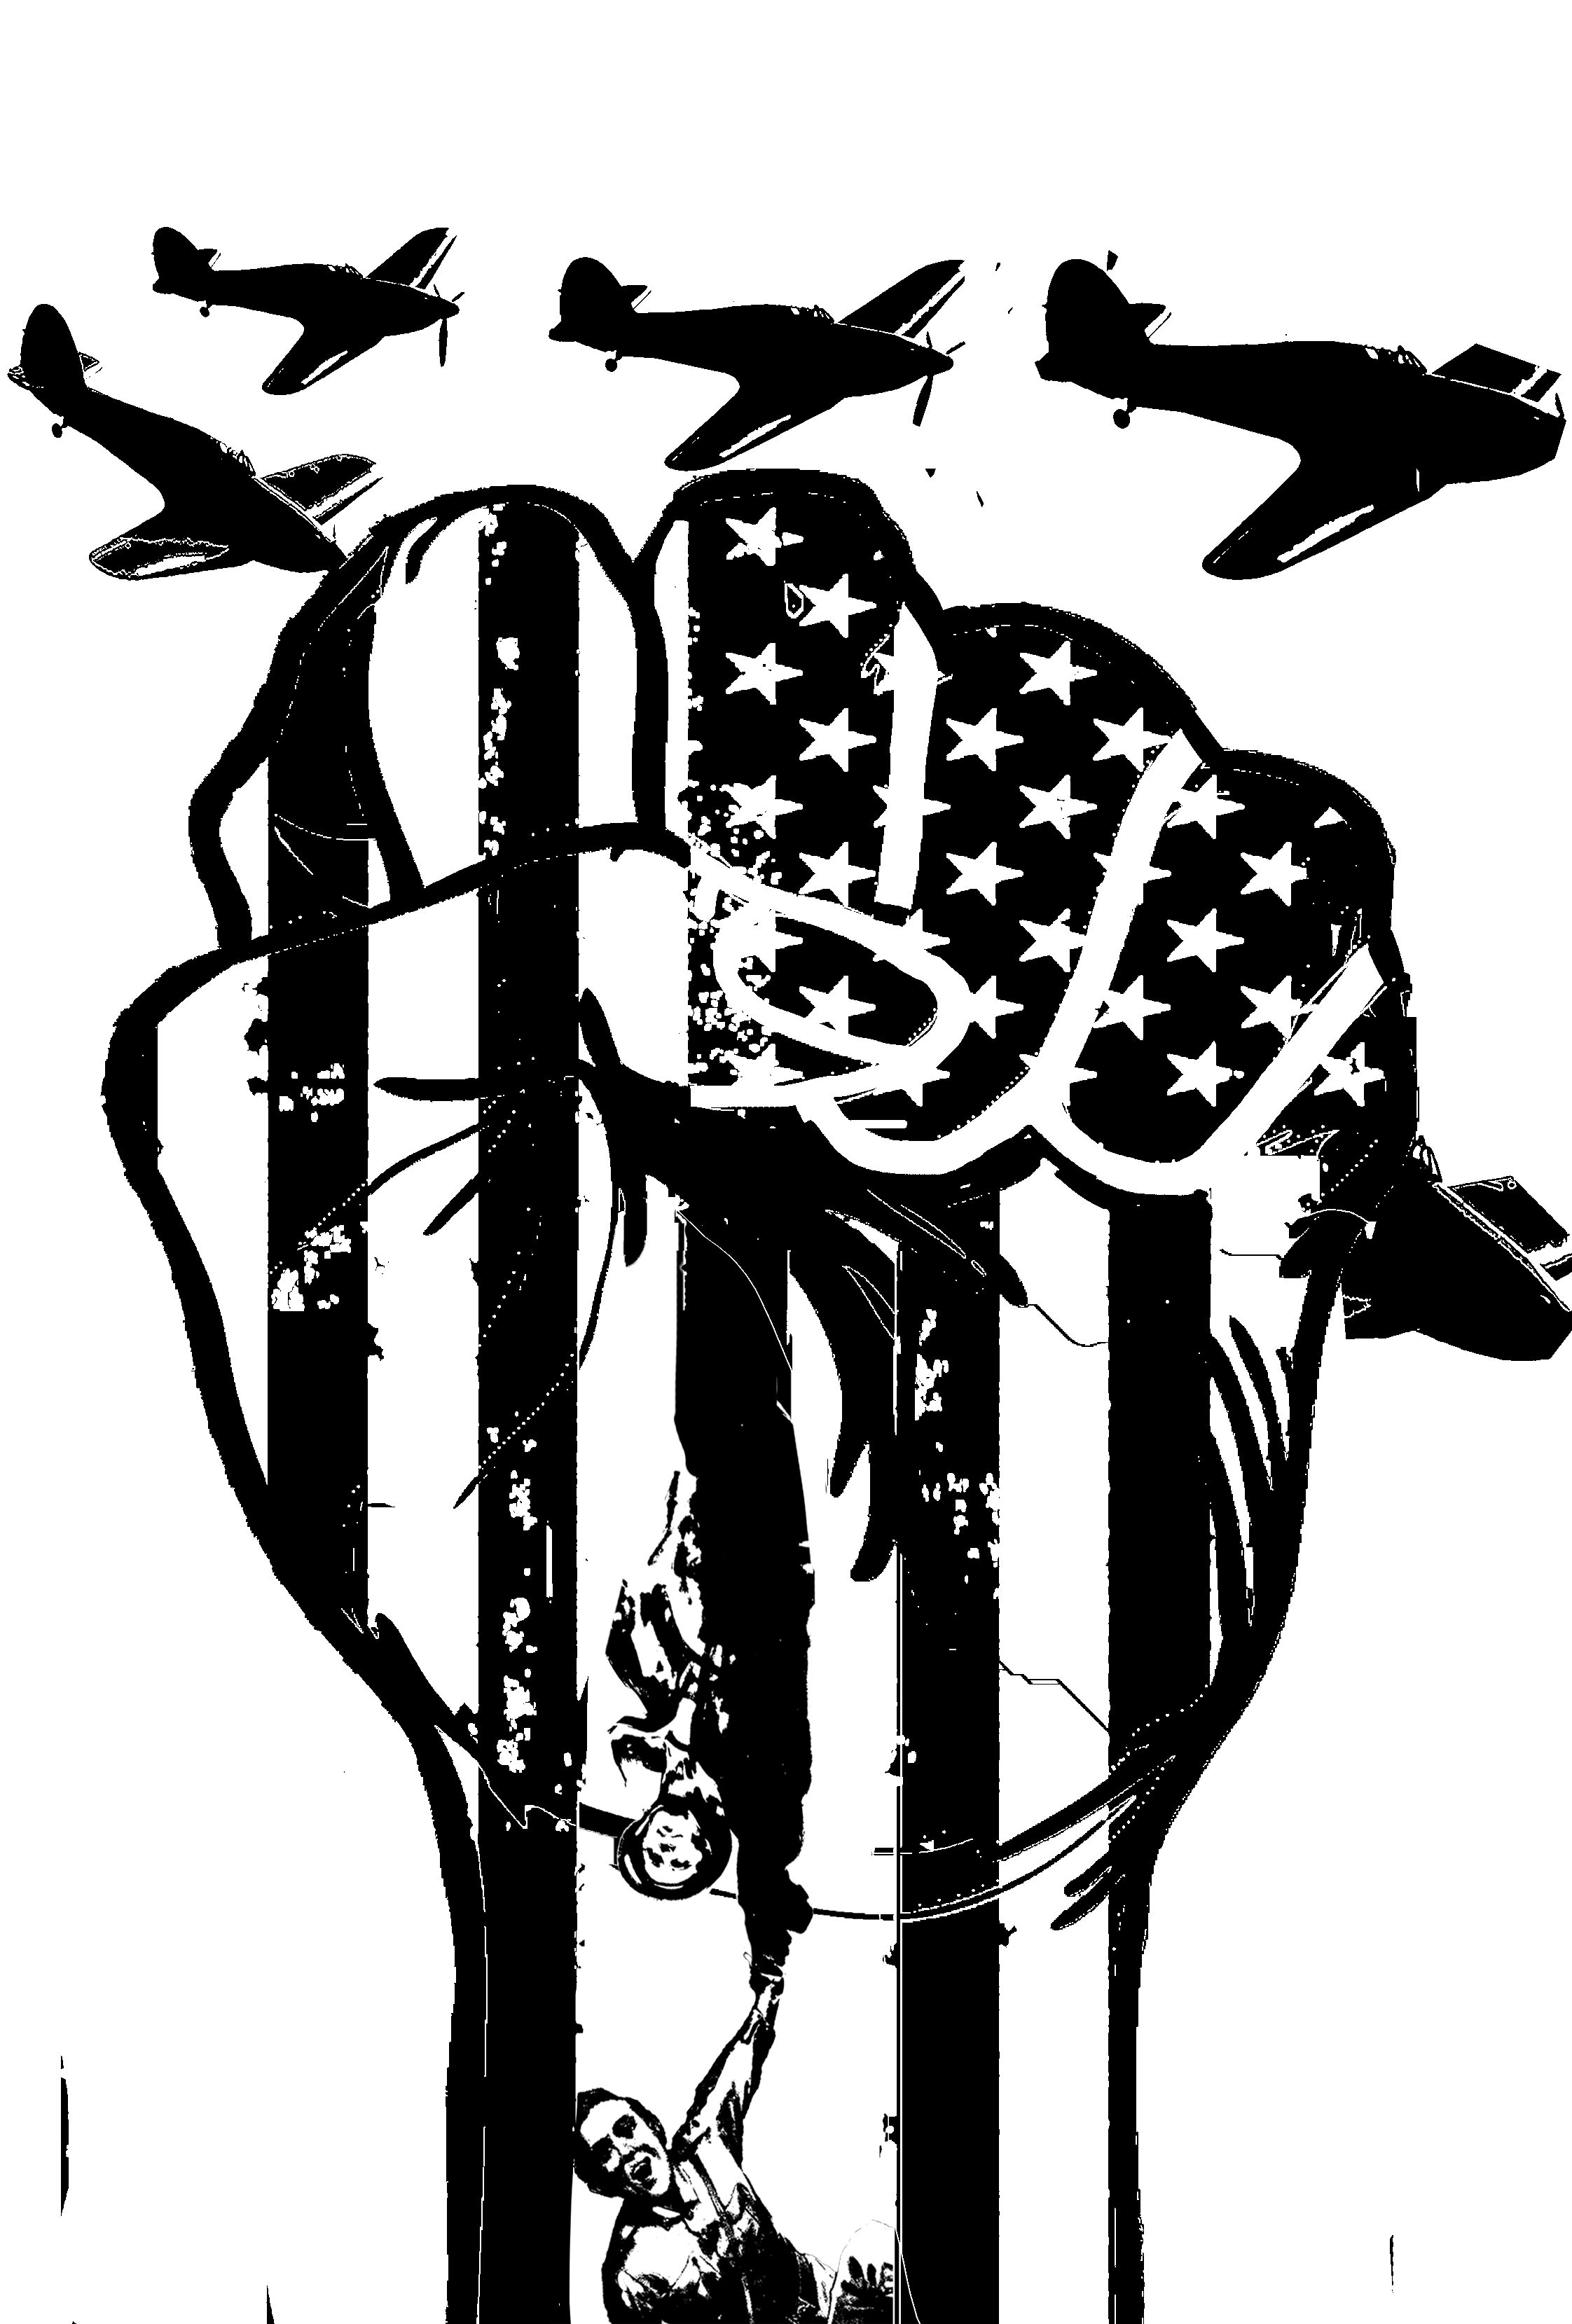 Project 2 forest gump process qlee011 i then contained the flag within a fist as fists are a symbol of violence and power that represents war the setting the movie is set in buycottarizona Choice Image